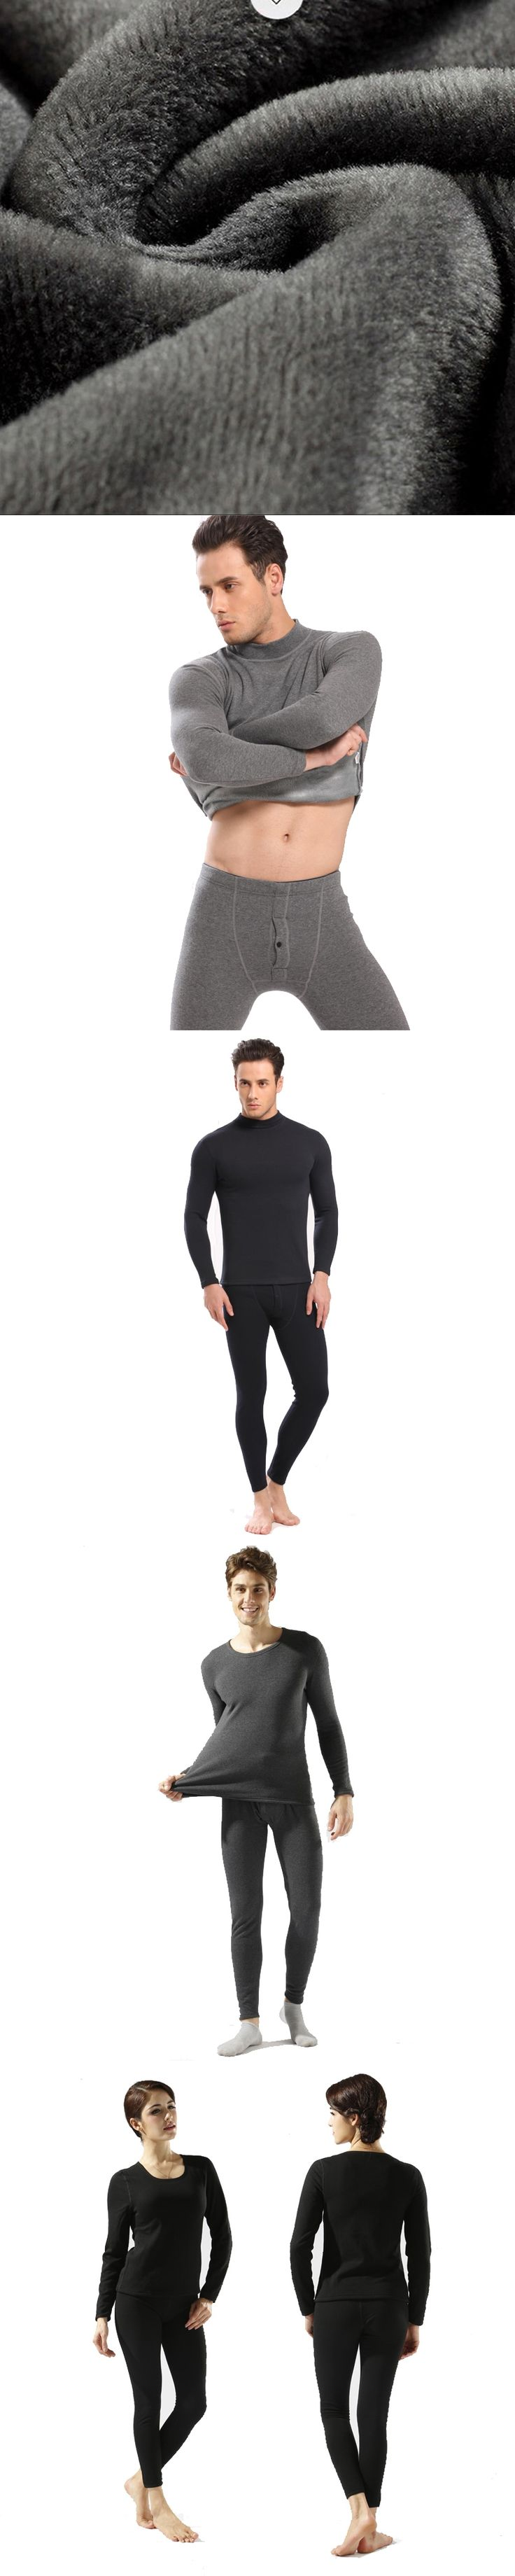 2017men and women winter thermal underwear for   Men and women indoors wearing base layer rash guard M-XXXL